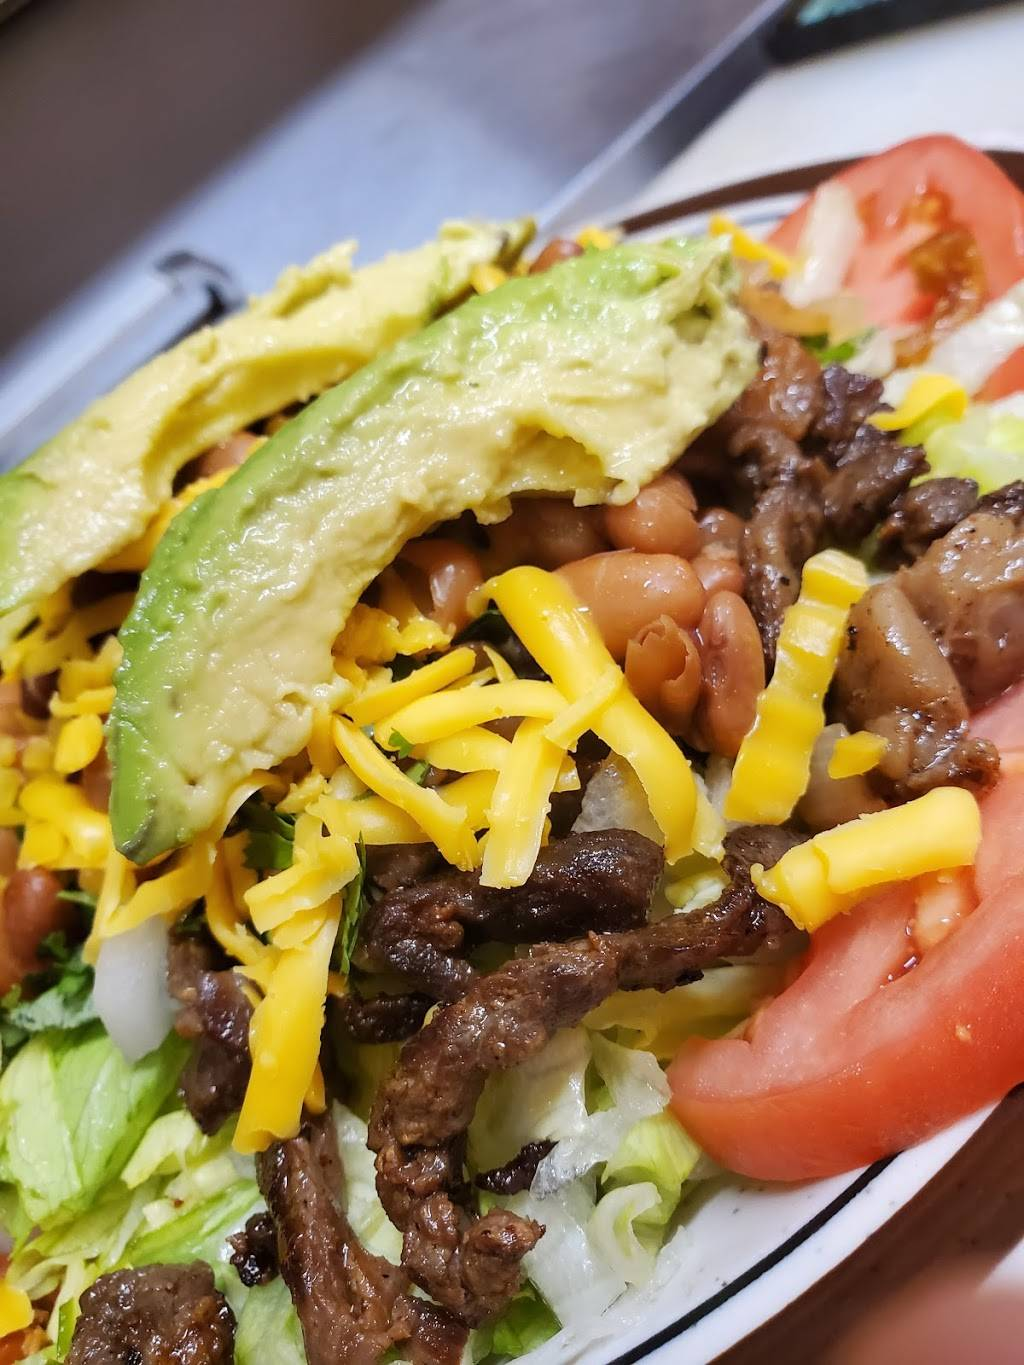 Don panchos mexican coffee   restaurant   202 W Moore Ave, Moulton, TX 77975, USA   3615965001 OR +1 361-596-5001